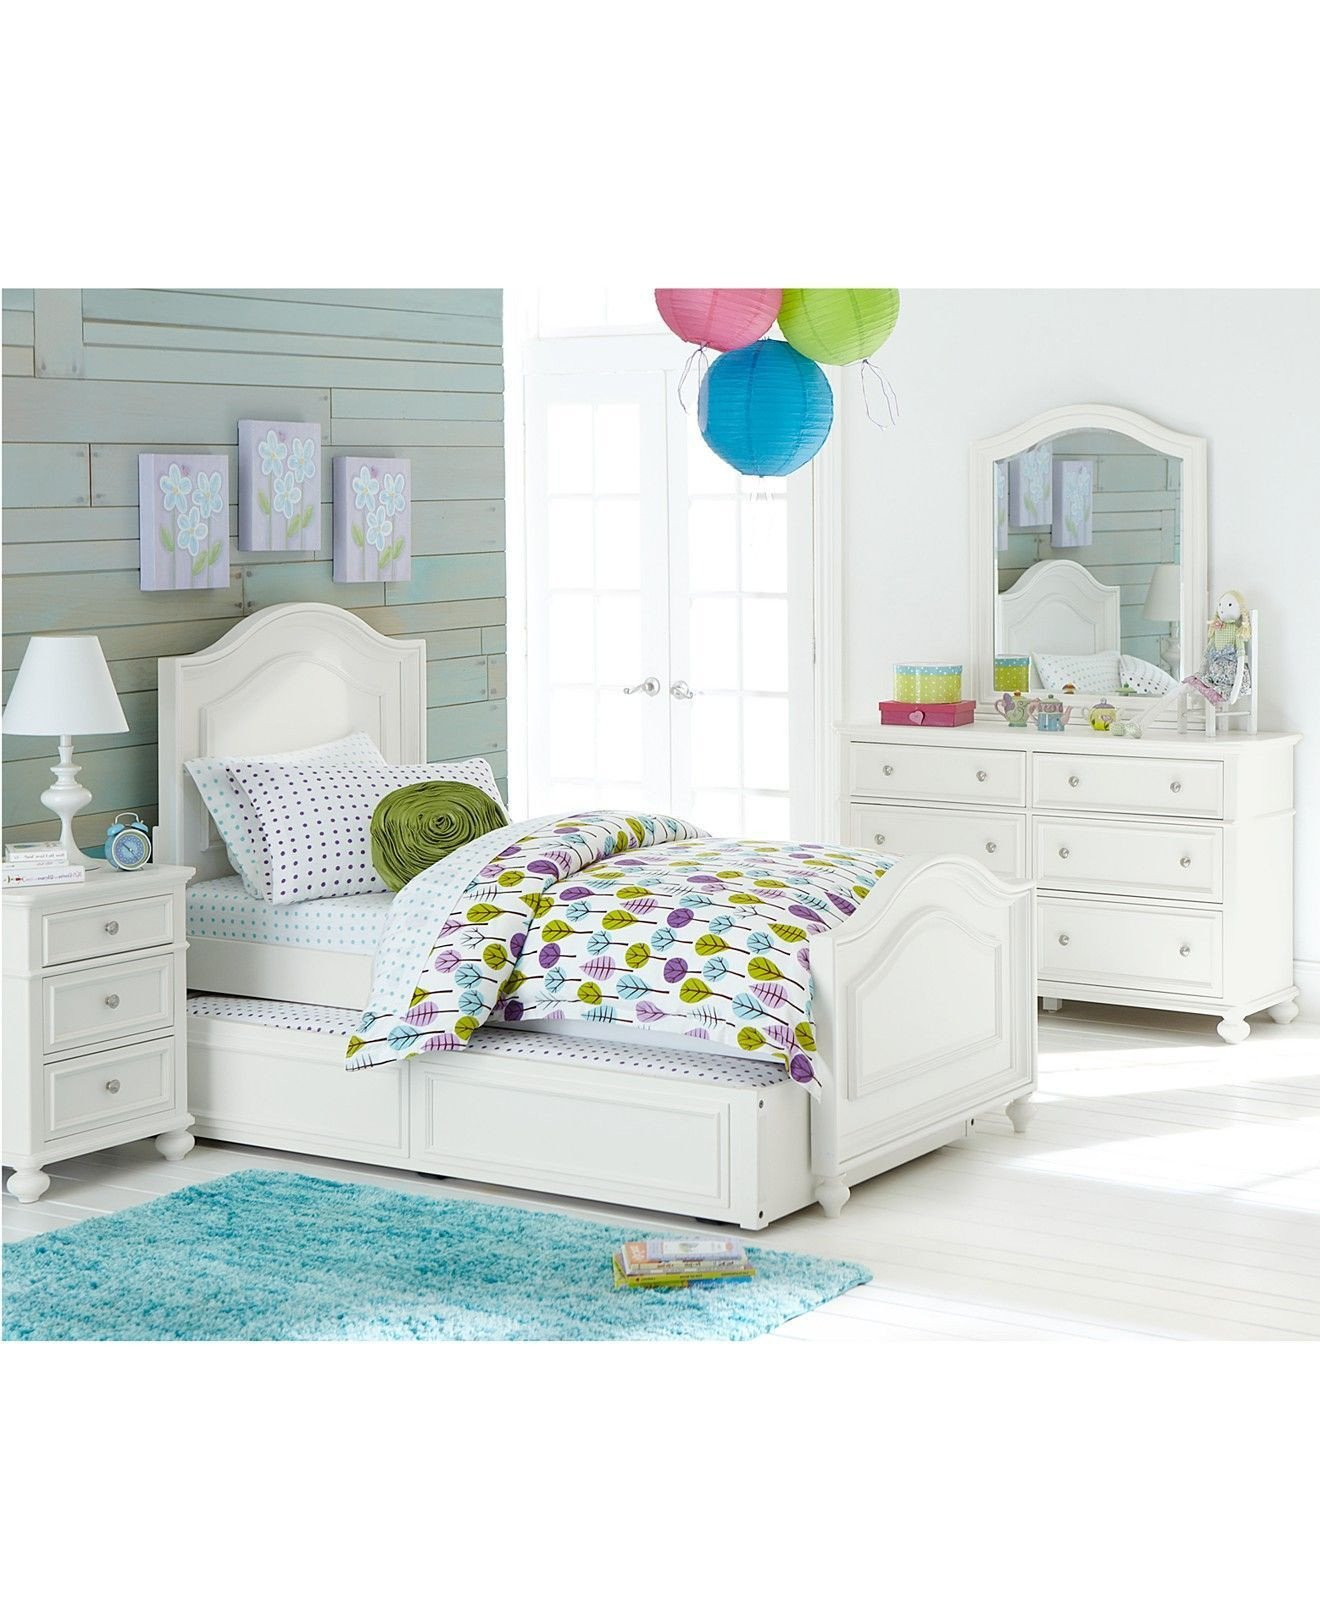 Cheap Childrens Bedroom Furniture Unique Bedroom Dresser Kids Roseville Kids Bedroom Furniture 6